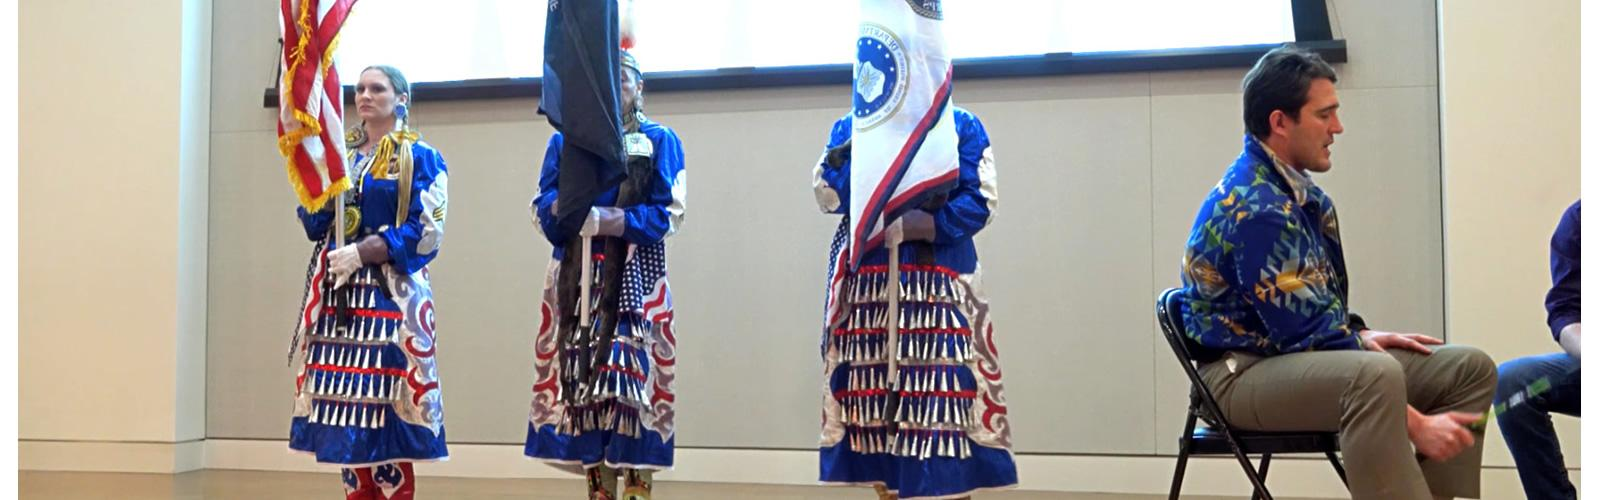 Three women in native american traditional dress holding the US and two native american flags on stage